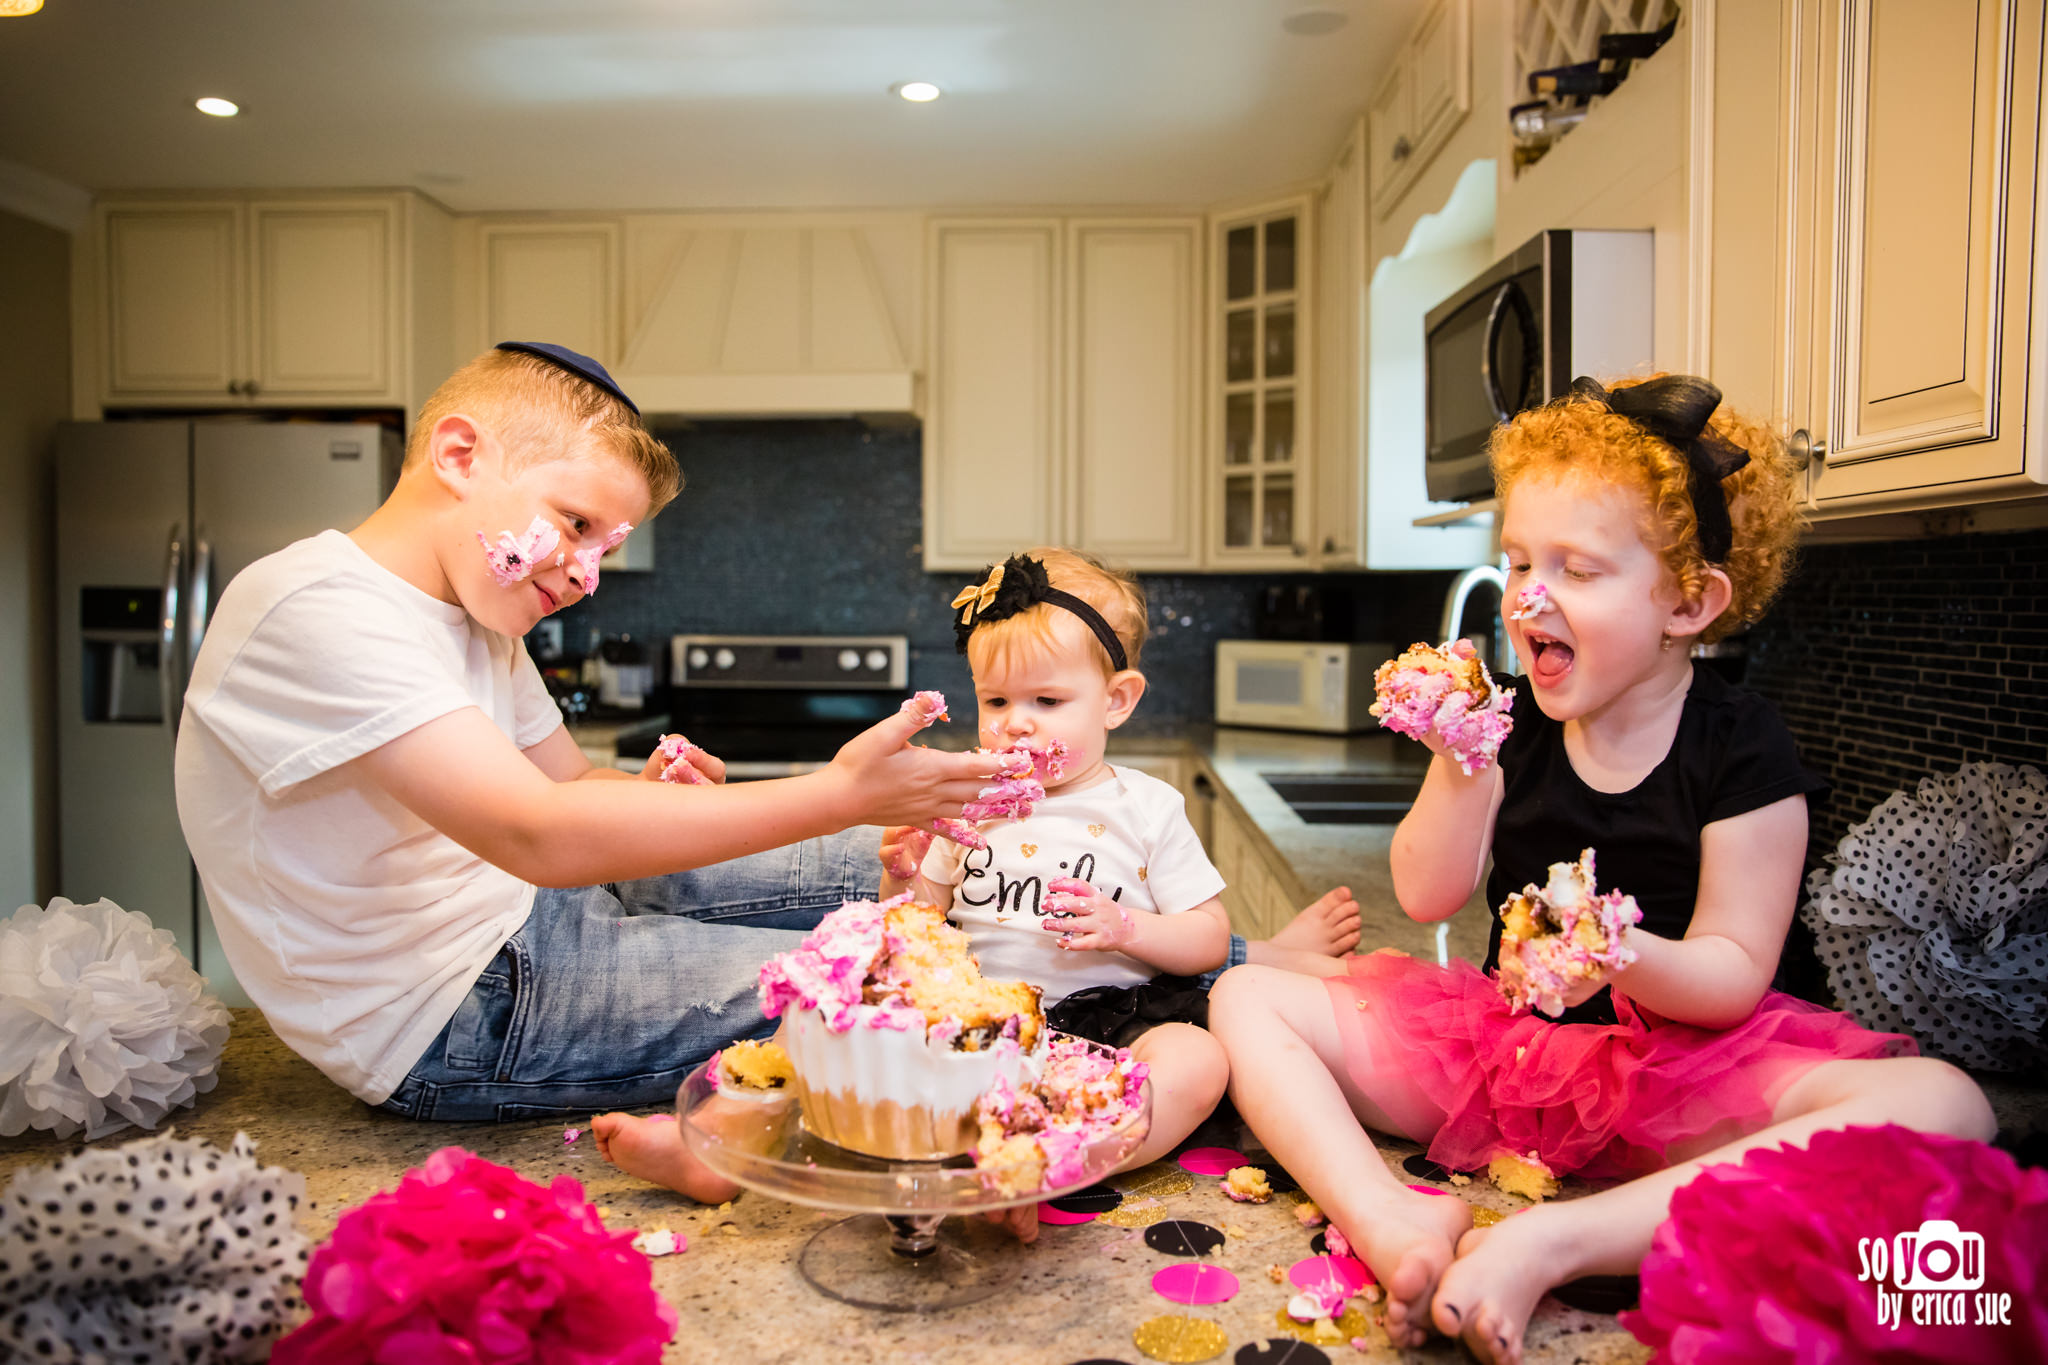 so-you-by-erica-sue-hollywood-fl-photographer-in-home-lifestyle-1st-birthday-cake-smash-4040.jpg